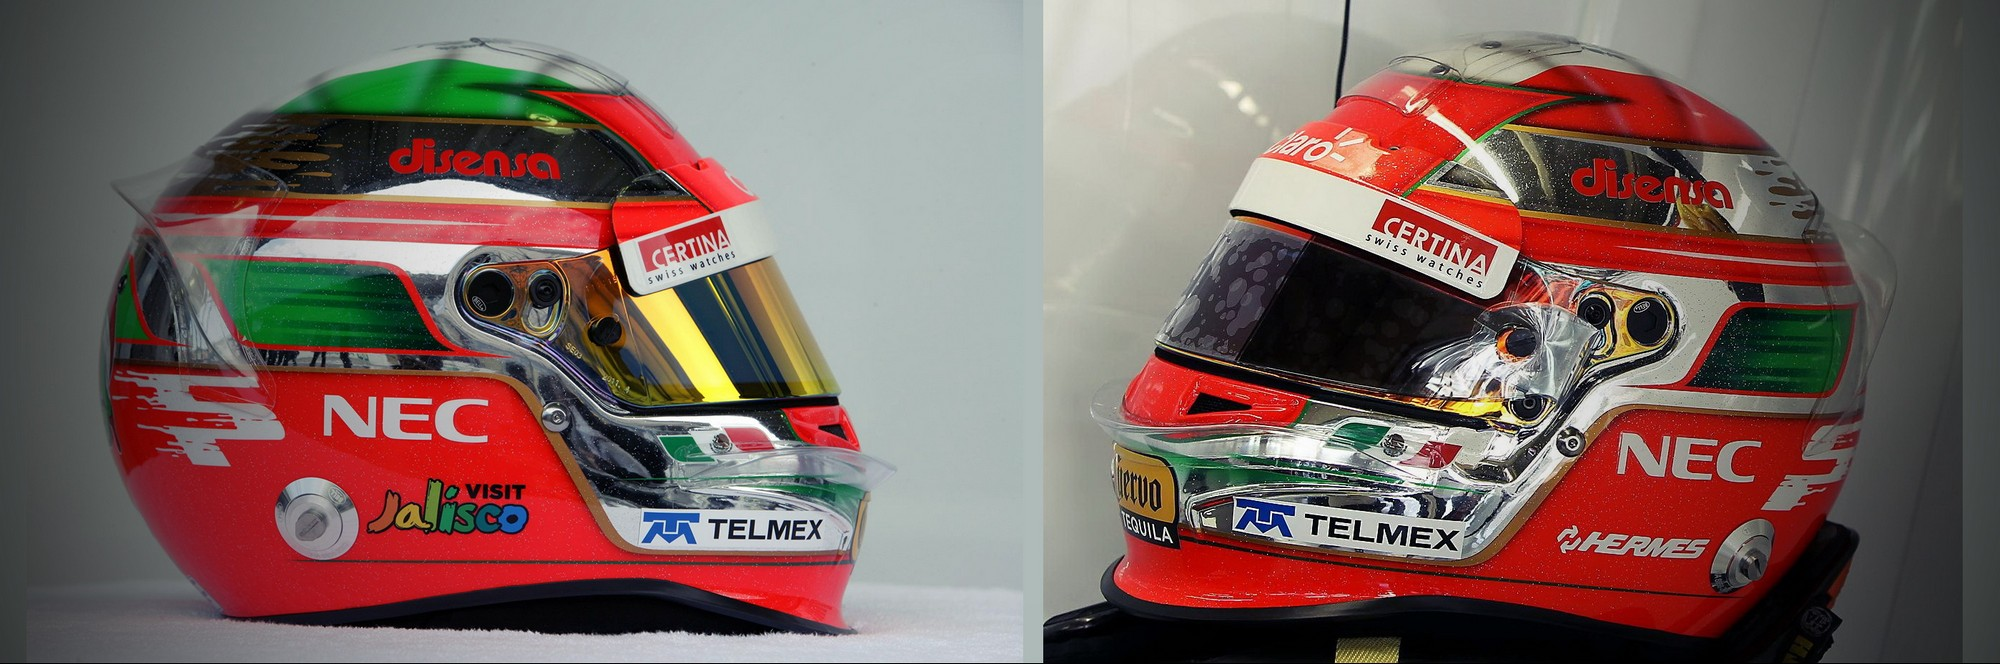 Шлем Серхио Переса на Гран-При Бразилии 2011 | 2011 Brazilian Grand Prix helmet of Sergio Perez